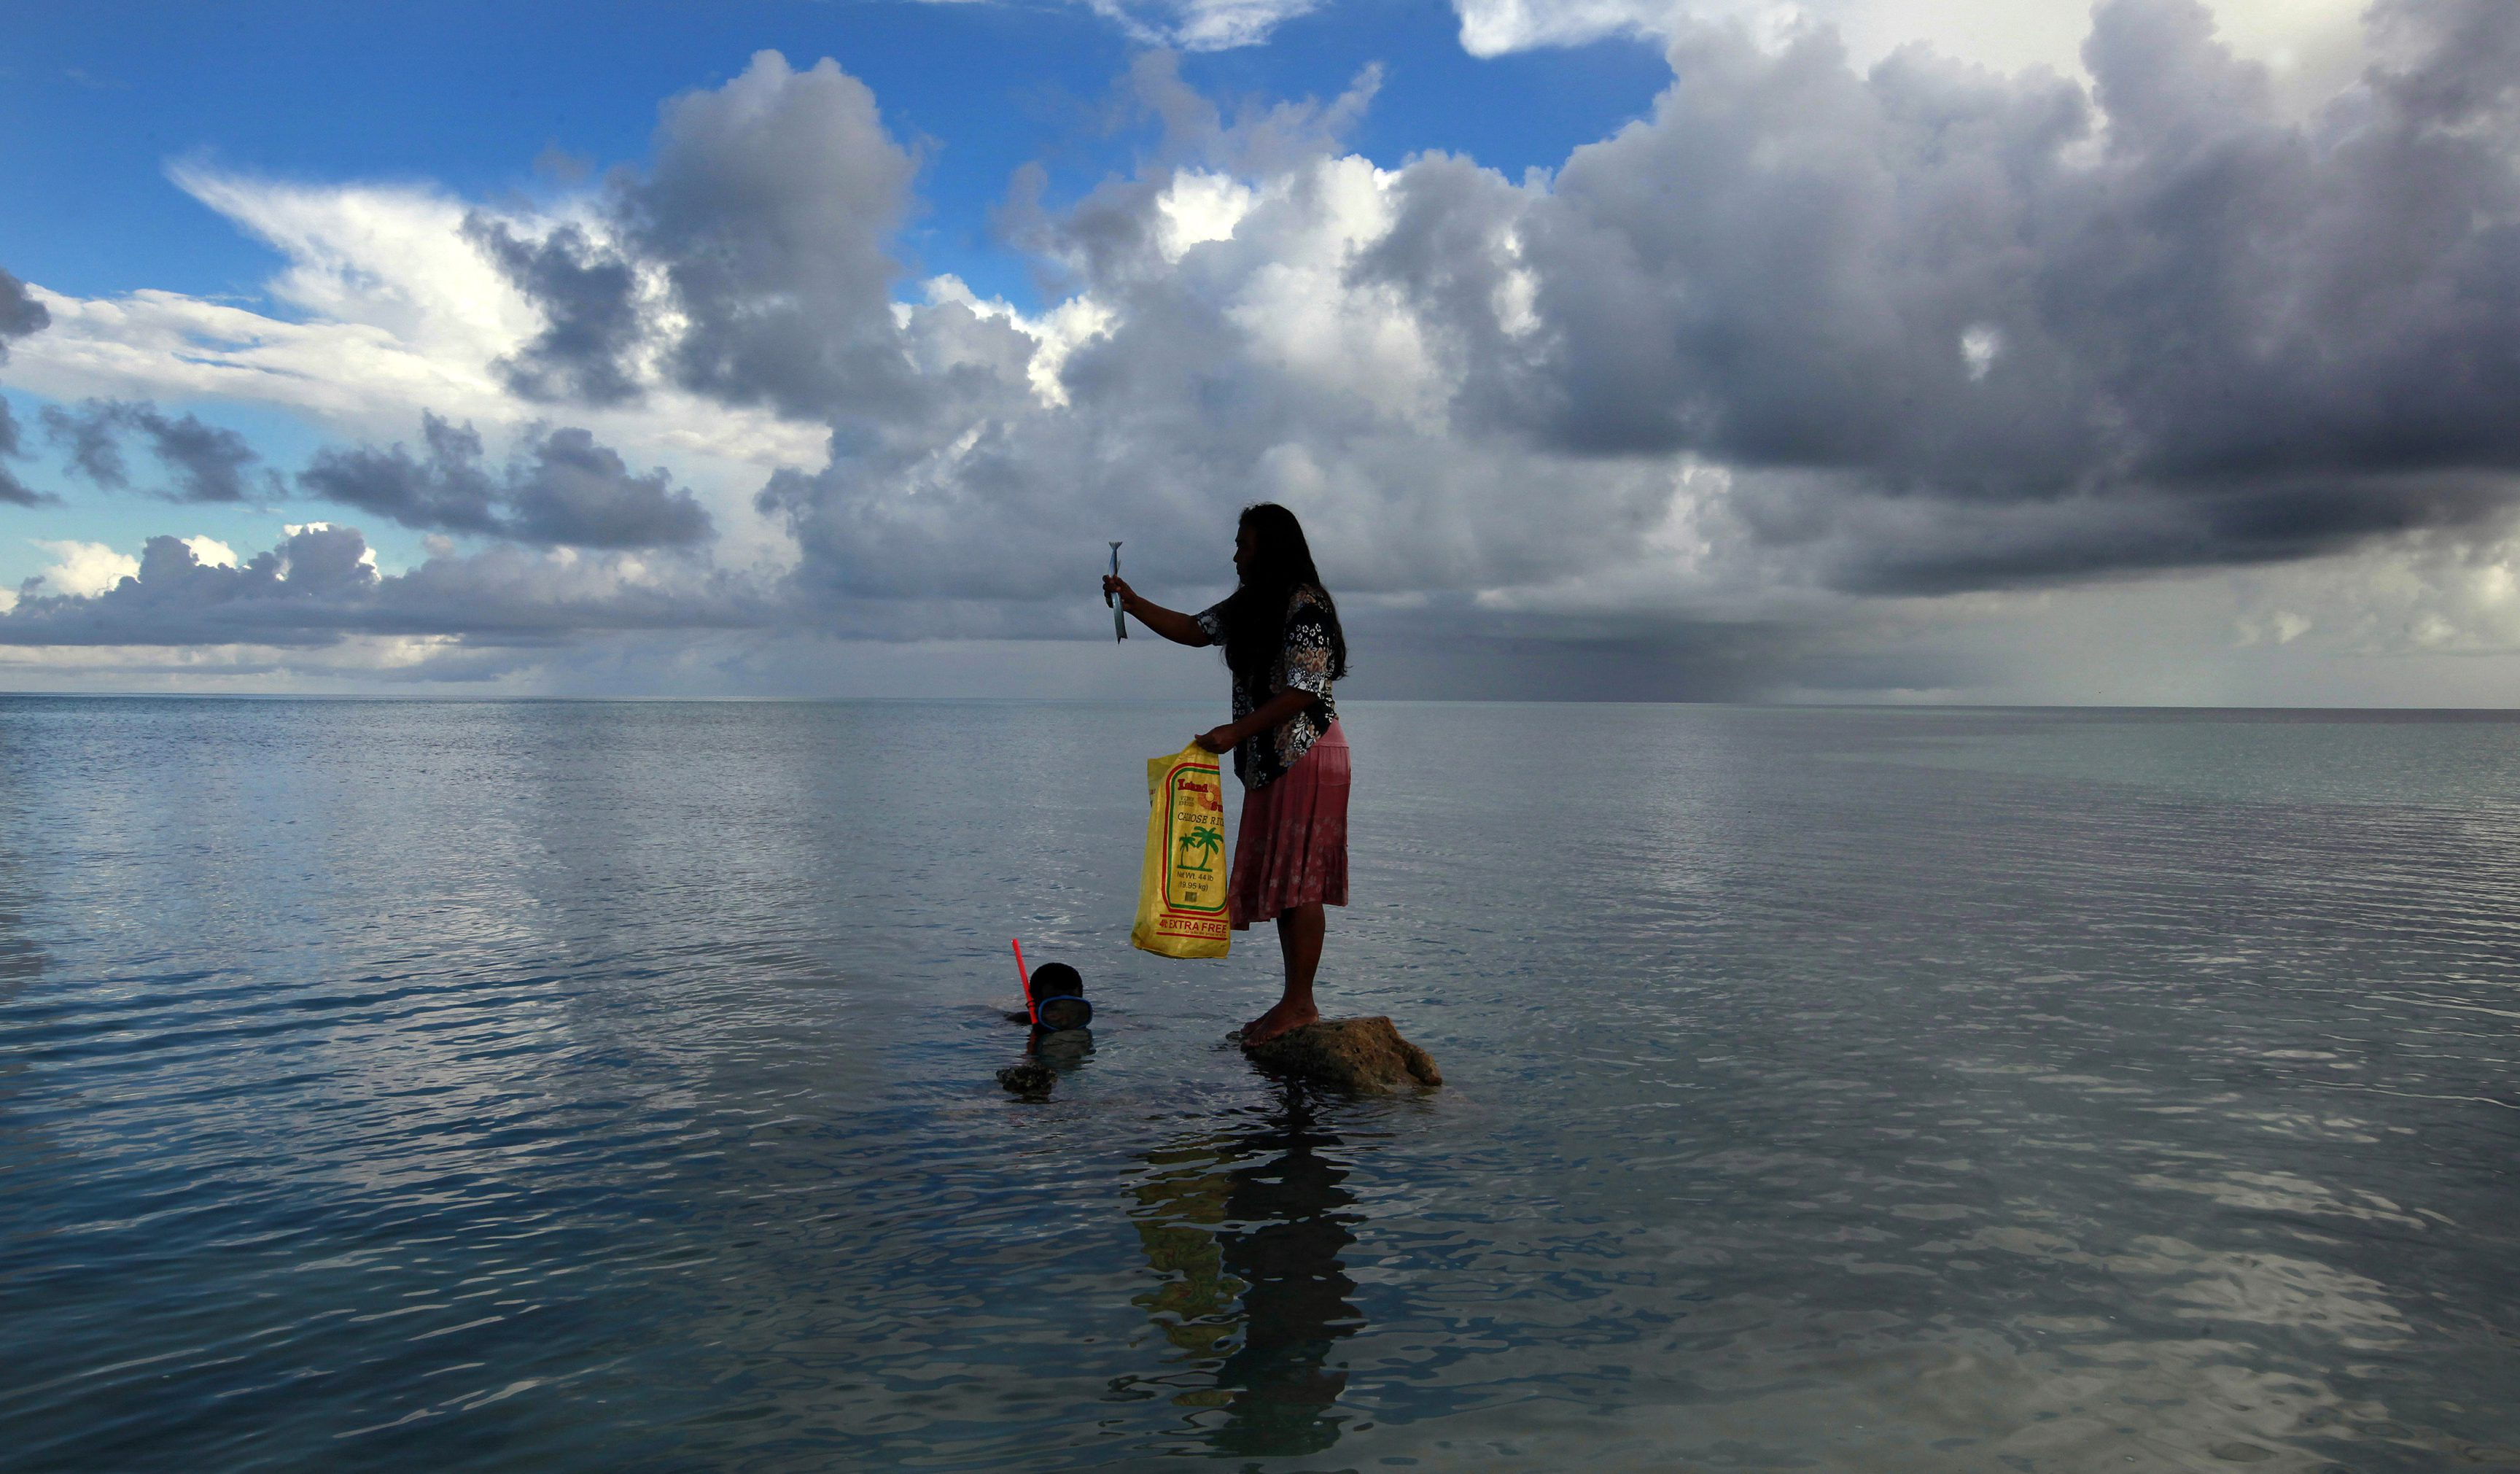 Binata Pinata stands on top of a rock holding a fish her husband Kaibakia just caught off Bikeman islet, located off South Tarawa in the central Pacific island nation of Kiribati.